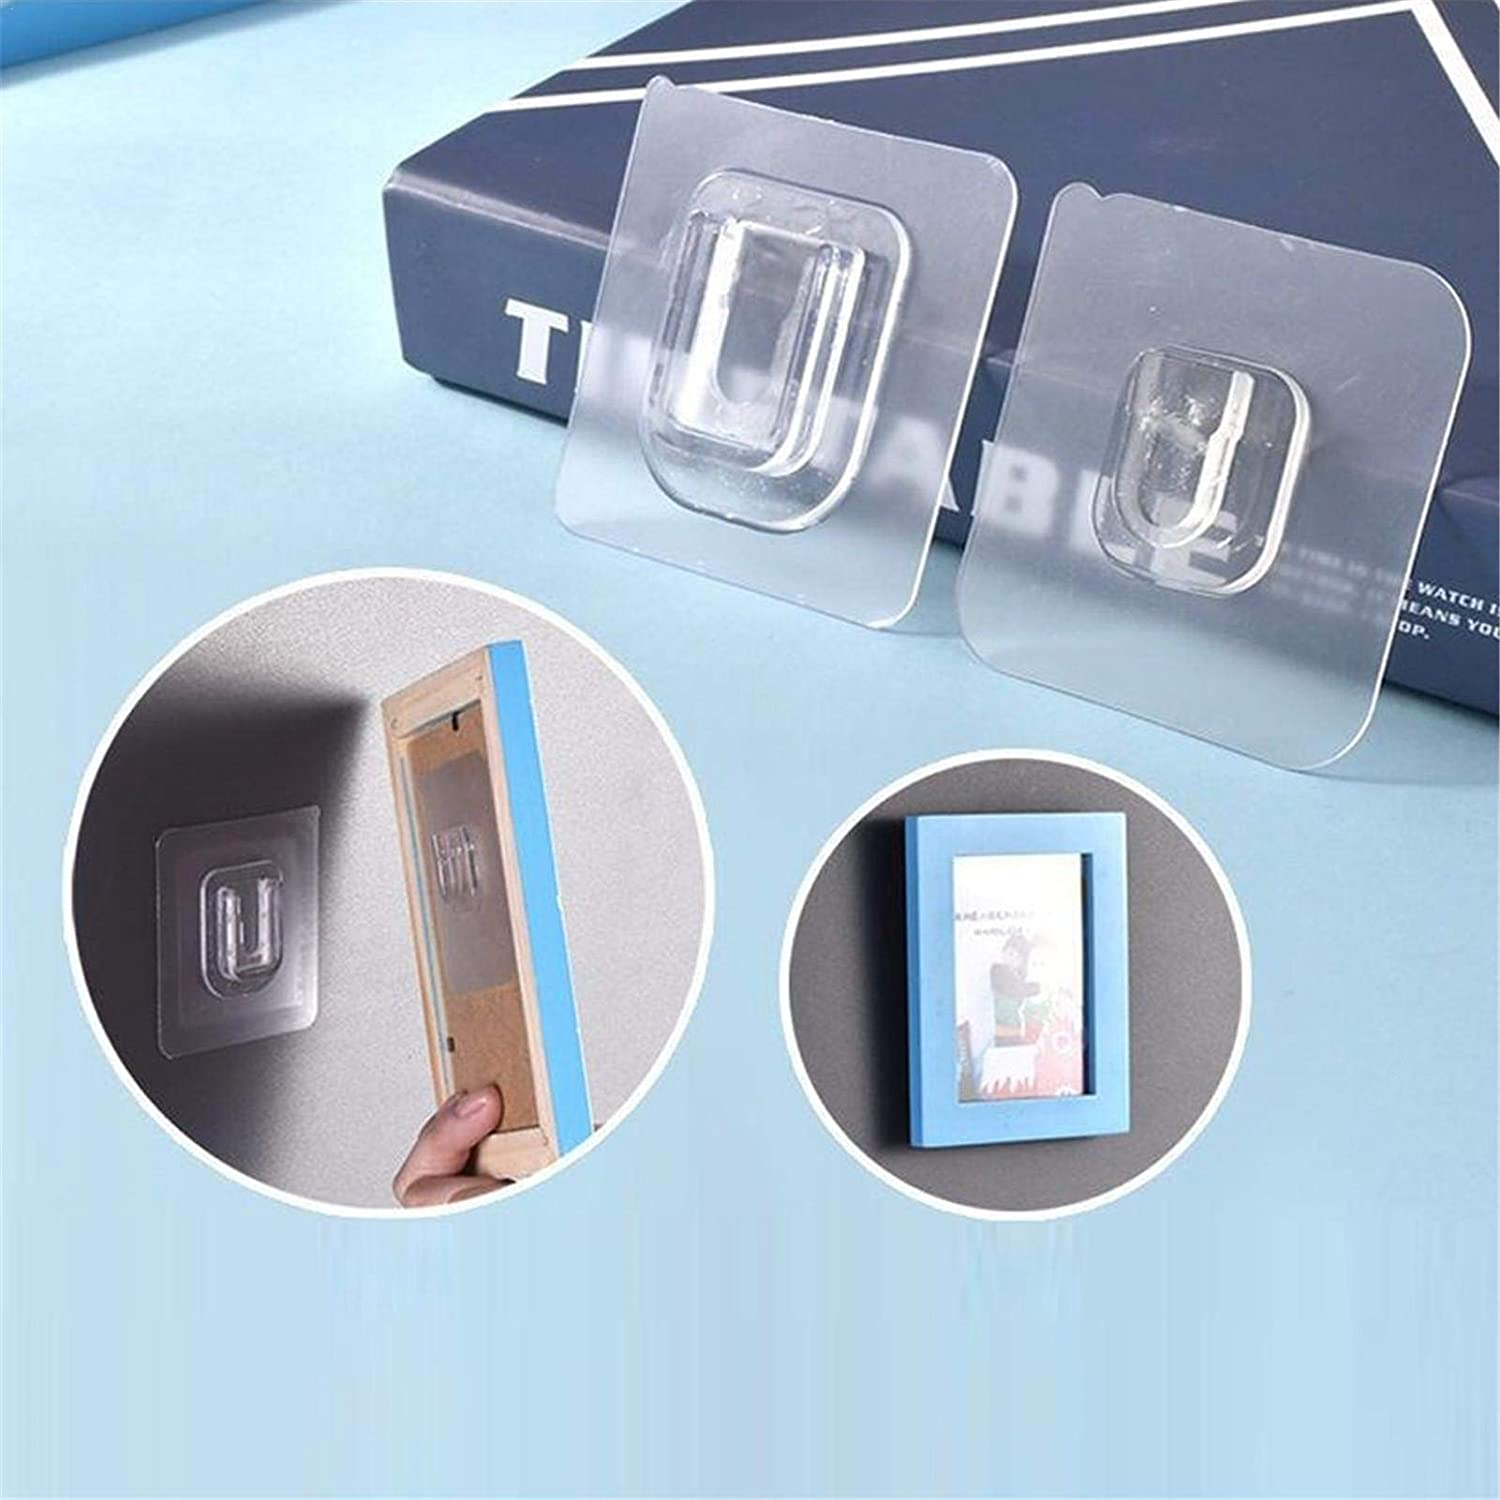 Wall Hangers Without Nails Adhesive Wall Hooks for Hanging Double-Sided Transparent No Damage Wall Hangers Hooks